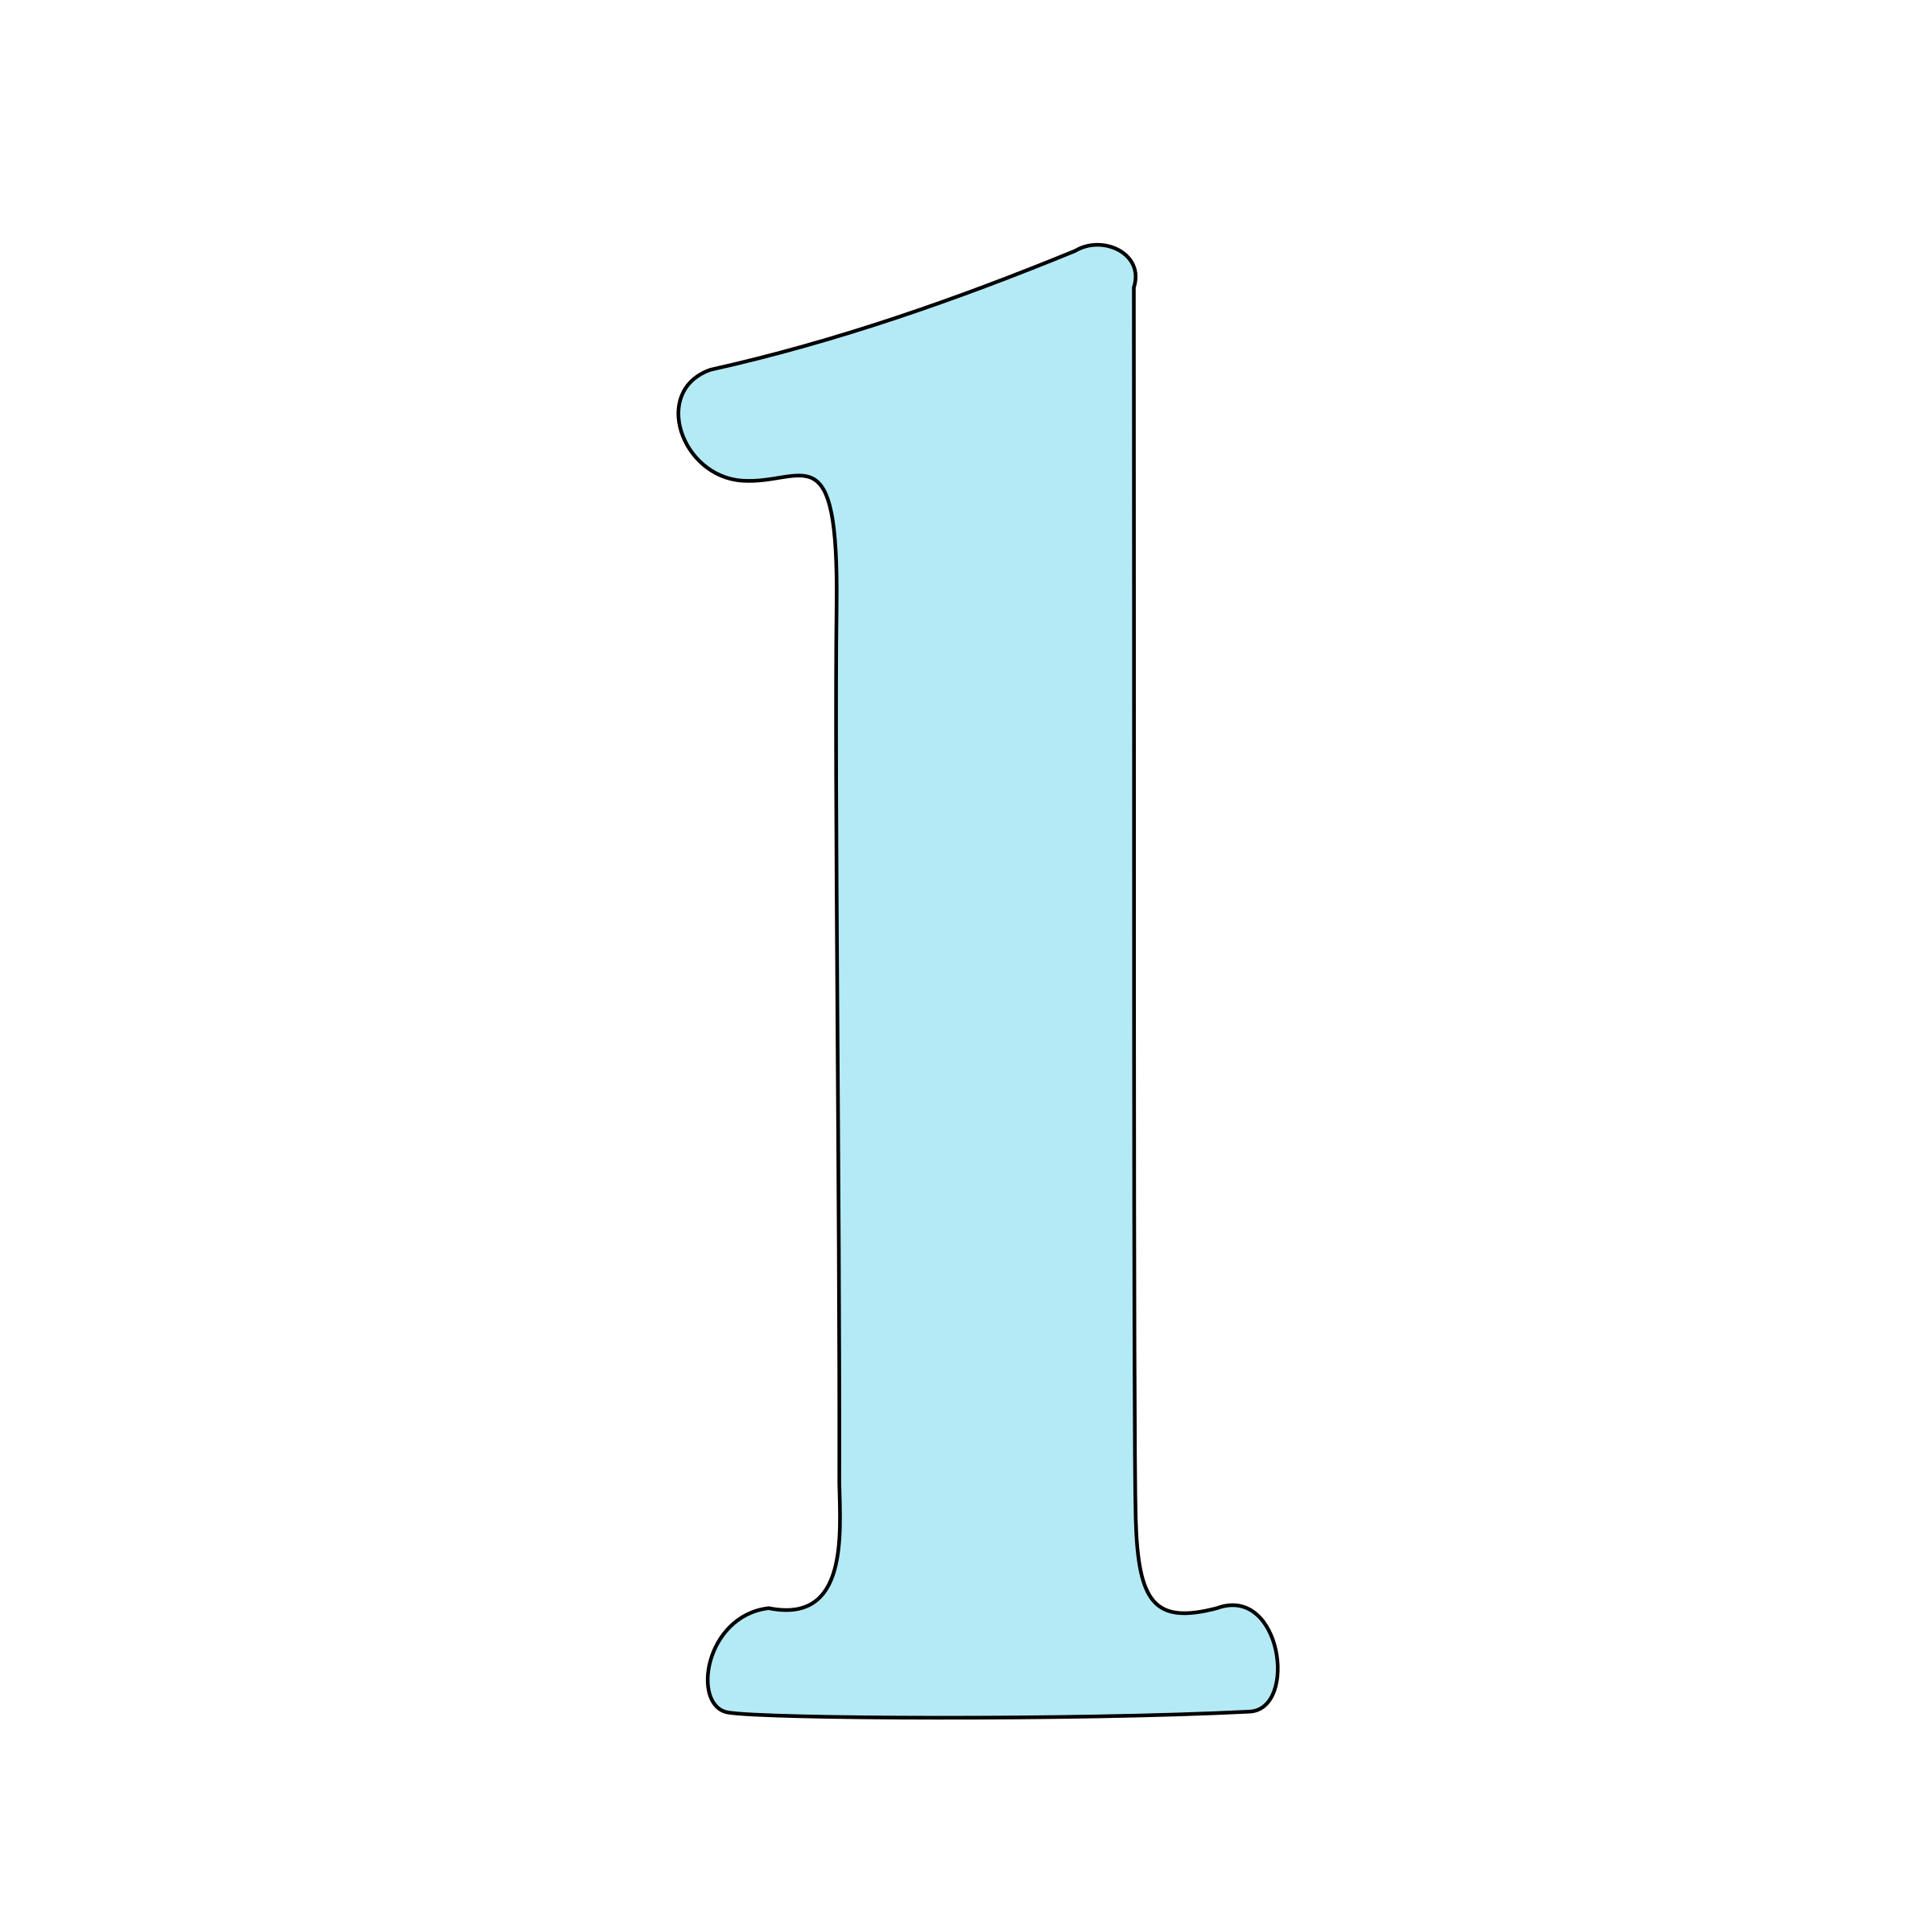 L clipart lowercase. Big image png